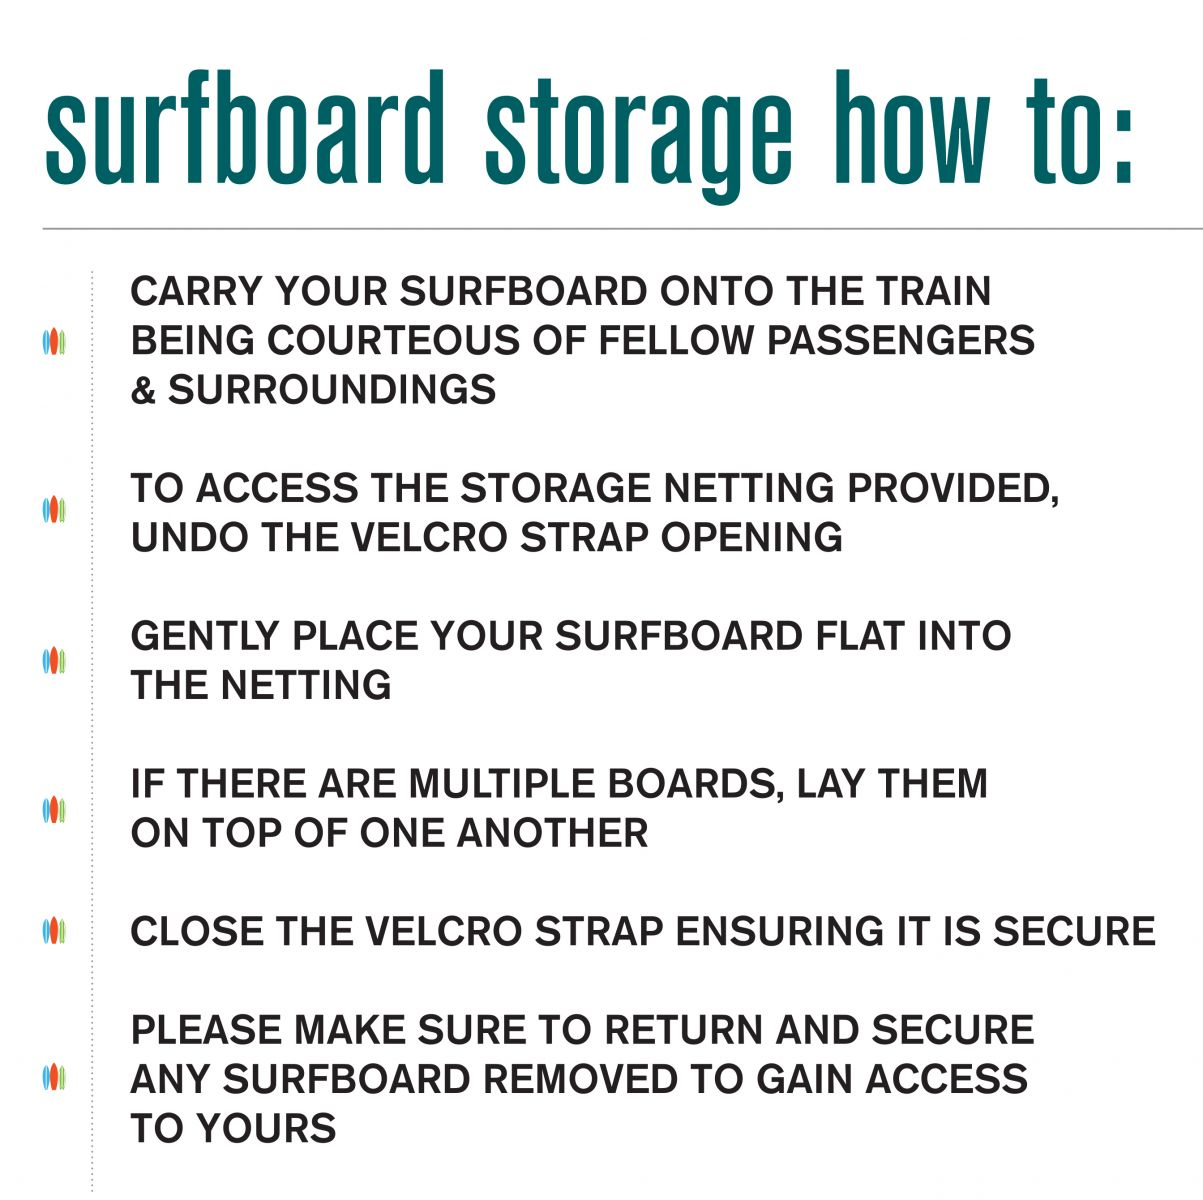 Surfboard Storage How To